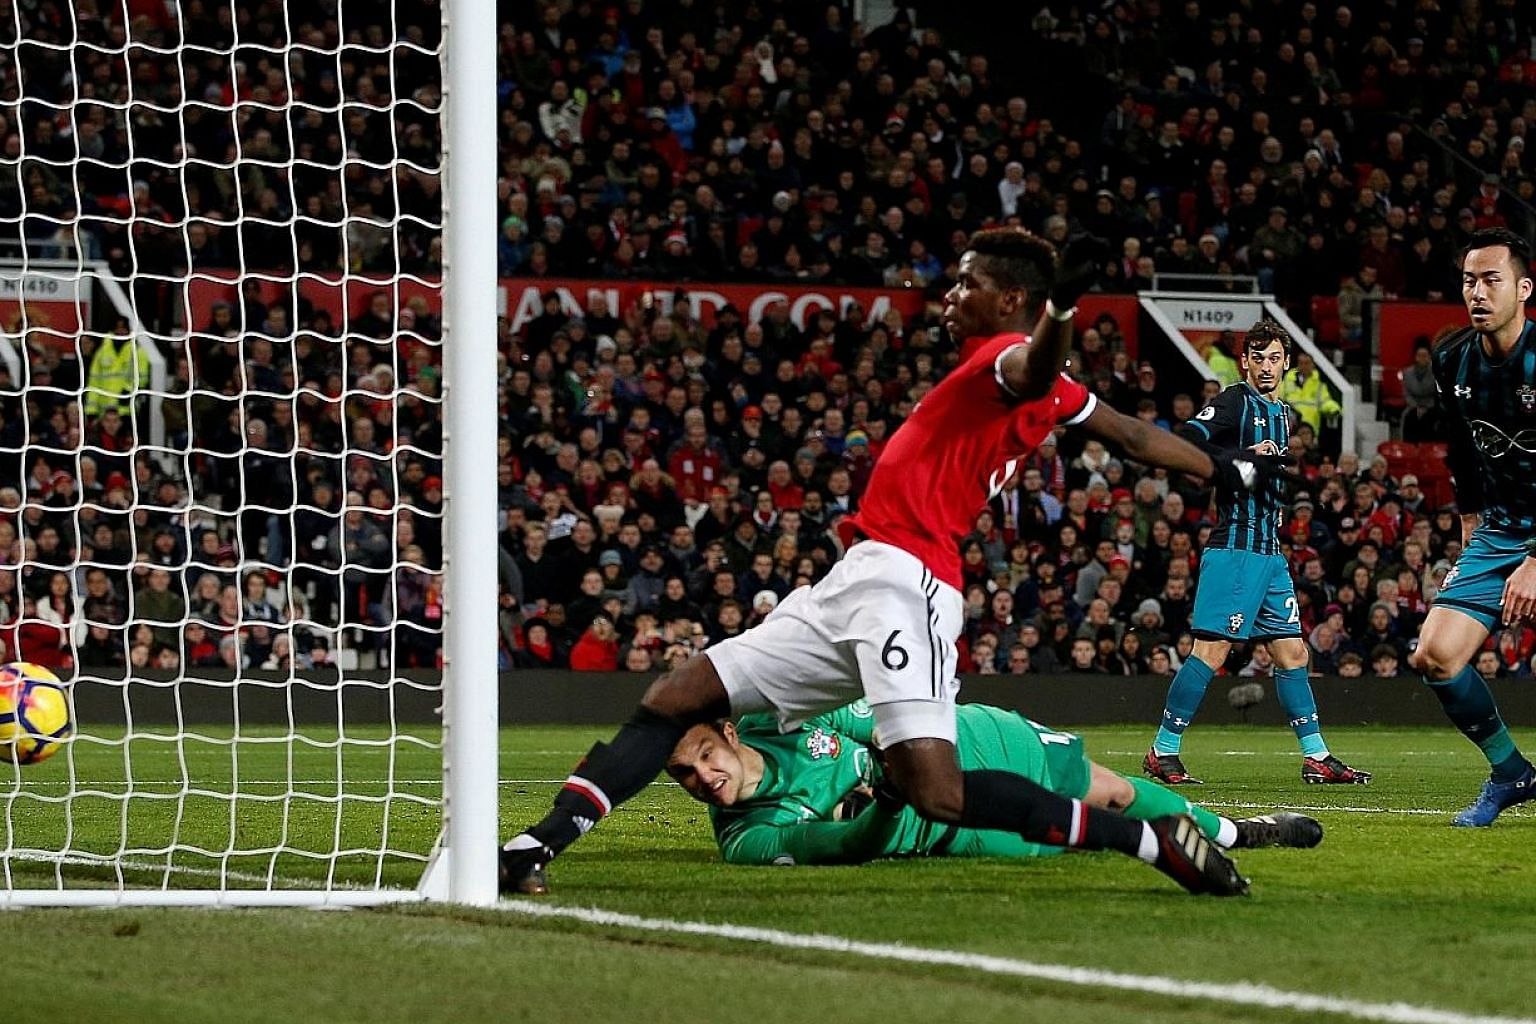 Manchester United's Paul Pogba putting the ball in the Southampton net in the 81st minute but it was disallowed for offside. The Premier League match ended 0-0, which was United's third consecutive draw in the league.